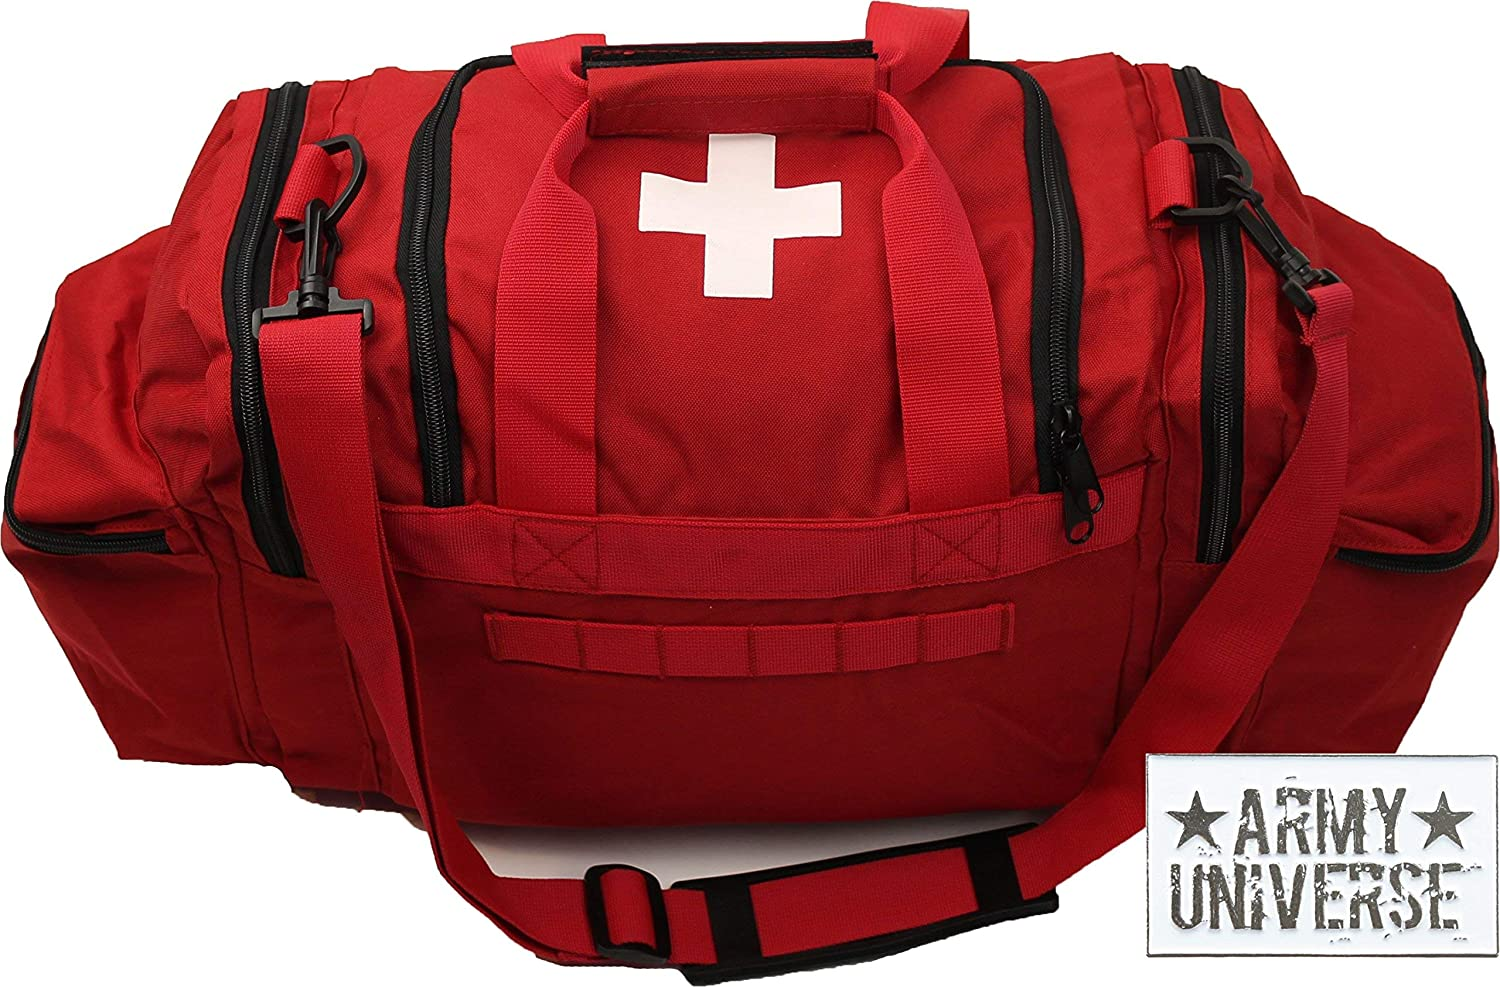 Amazon.com   Army Universe Red EMT EMS White Cross Starter Beginners Trauma  Field Medics Carry Shoulder Bag Pin   Sports   Outdoors c9fd0546200